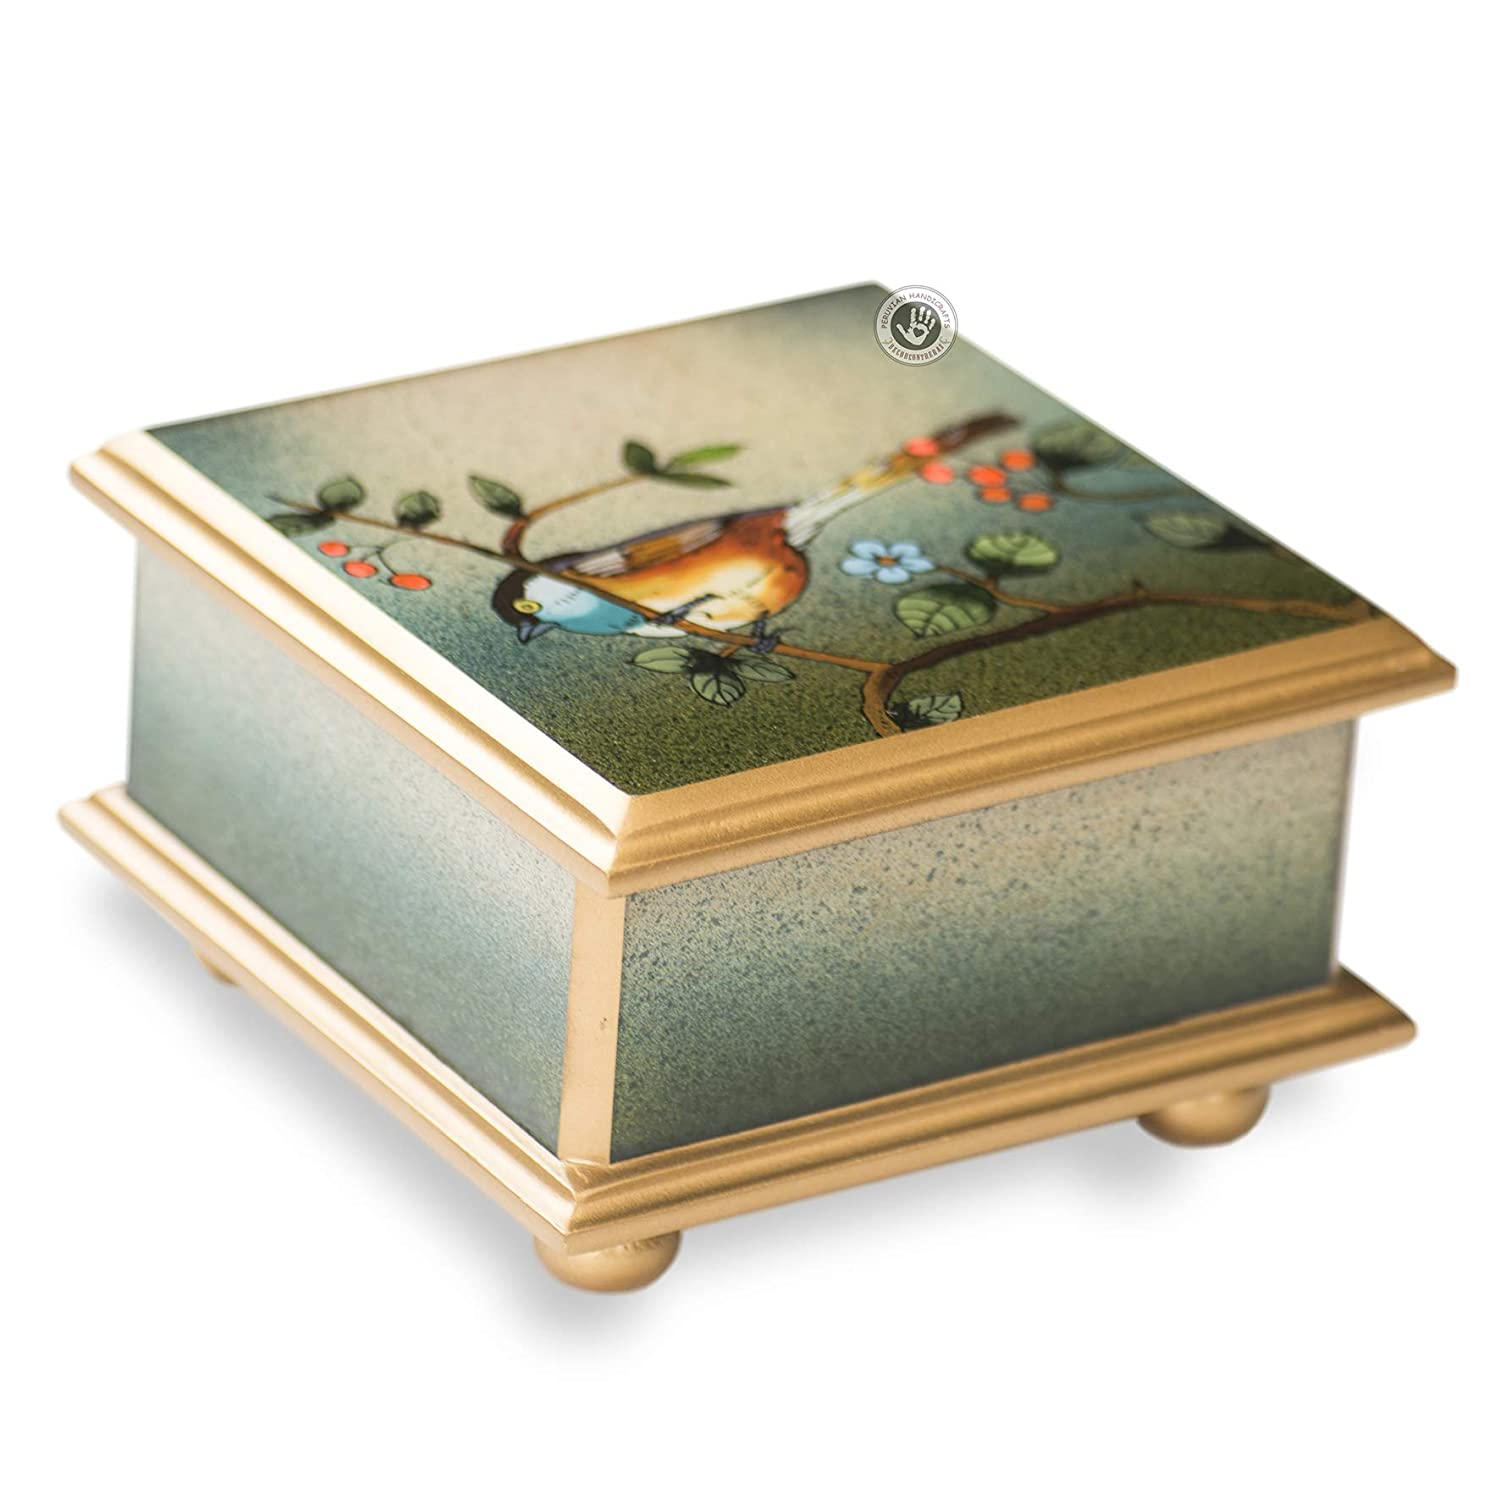 Reverse Painted Glass 3.9'x3.9' Box With Hinged Lid, Peruvian Jewelry box Handmade, Reverse Painting on glass, wood jewellery box, Gift for her'Baby Bird' Gift for herBaby Bird